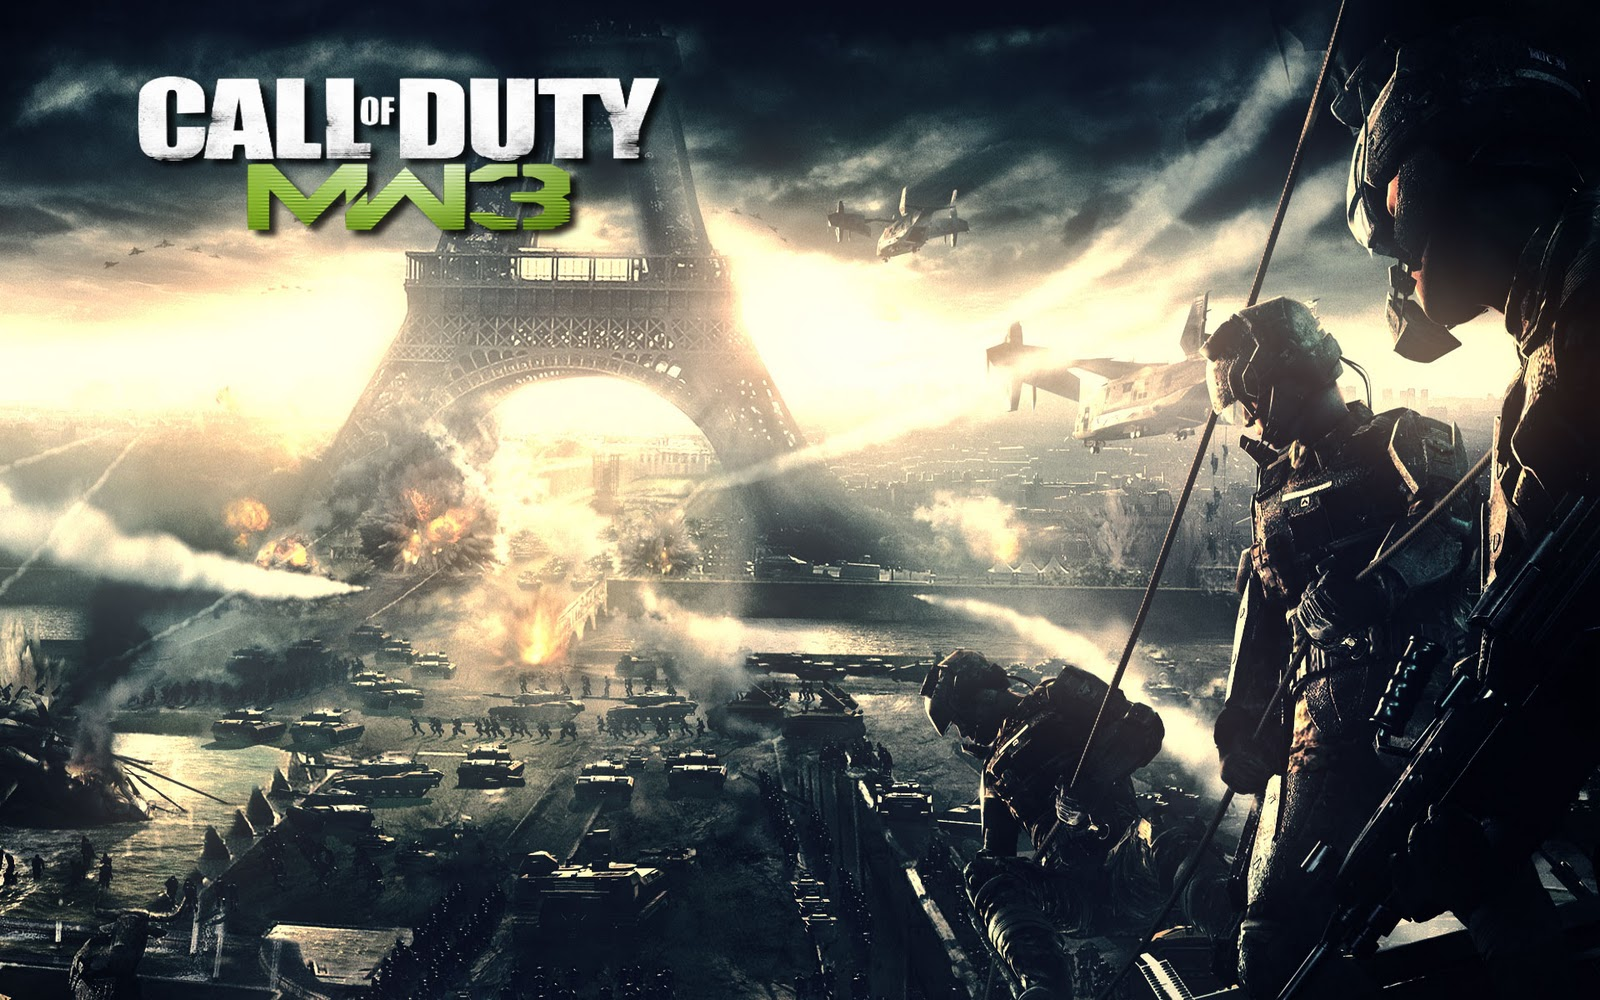 Call Of Duty Modern Warfare 4 Wallpaper